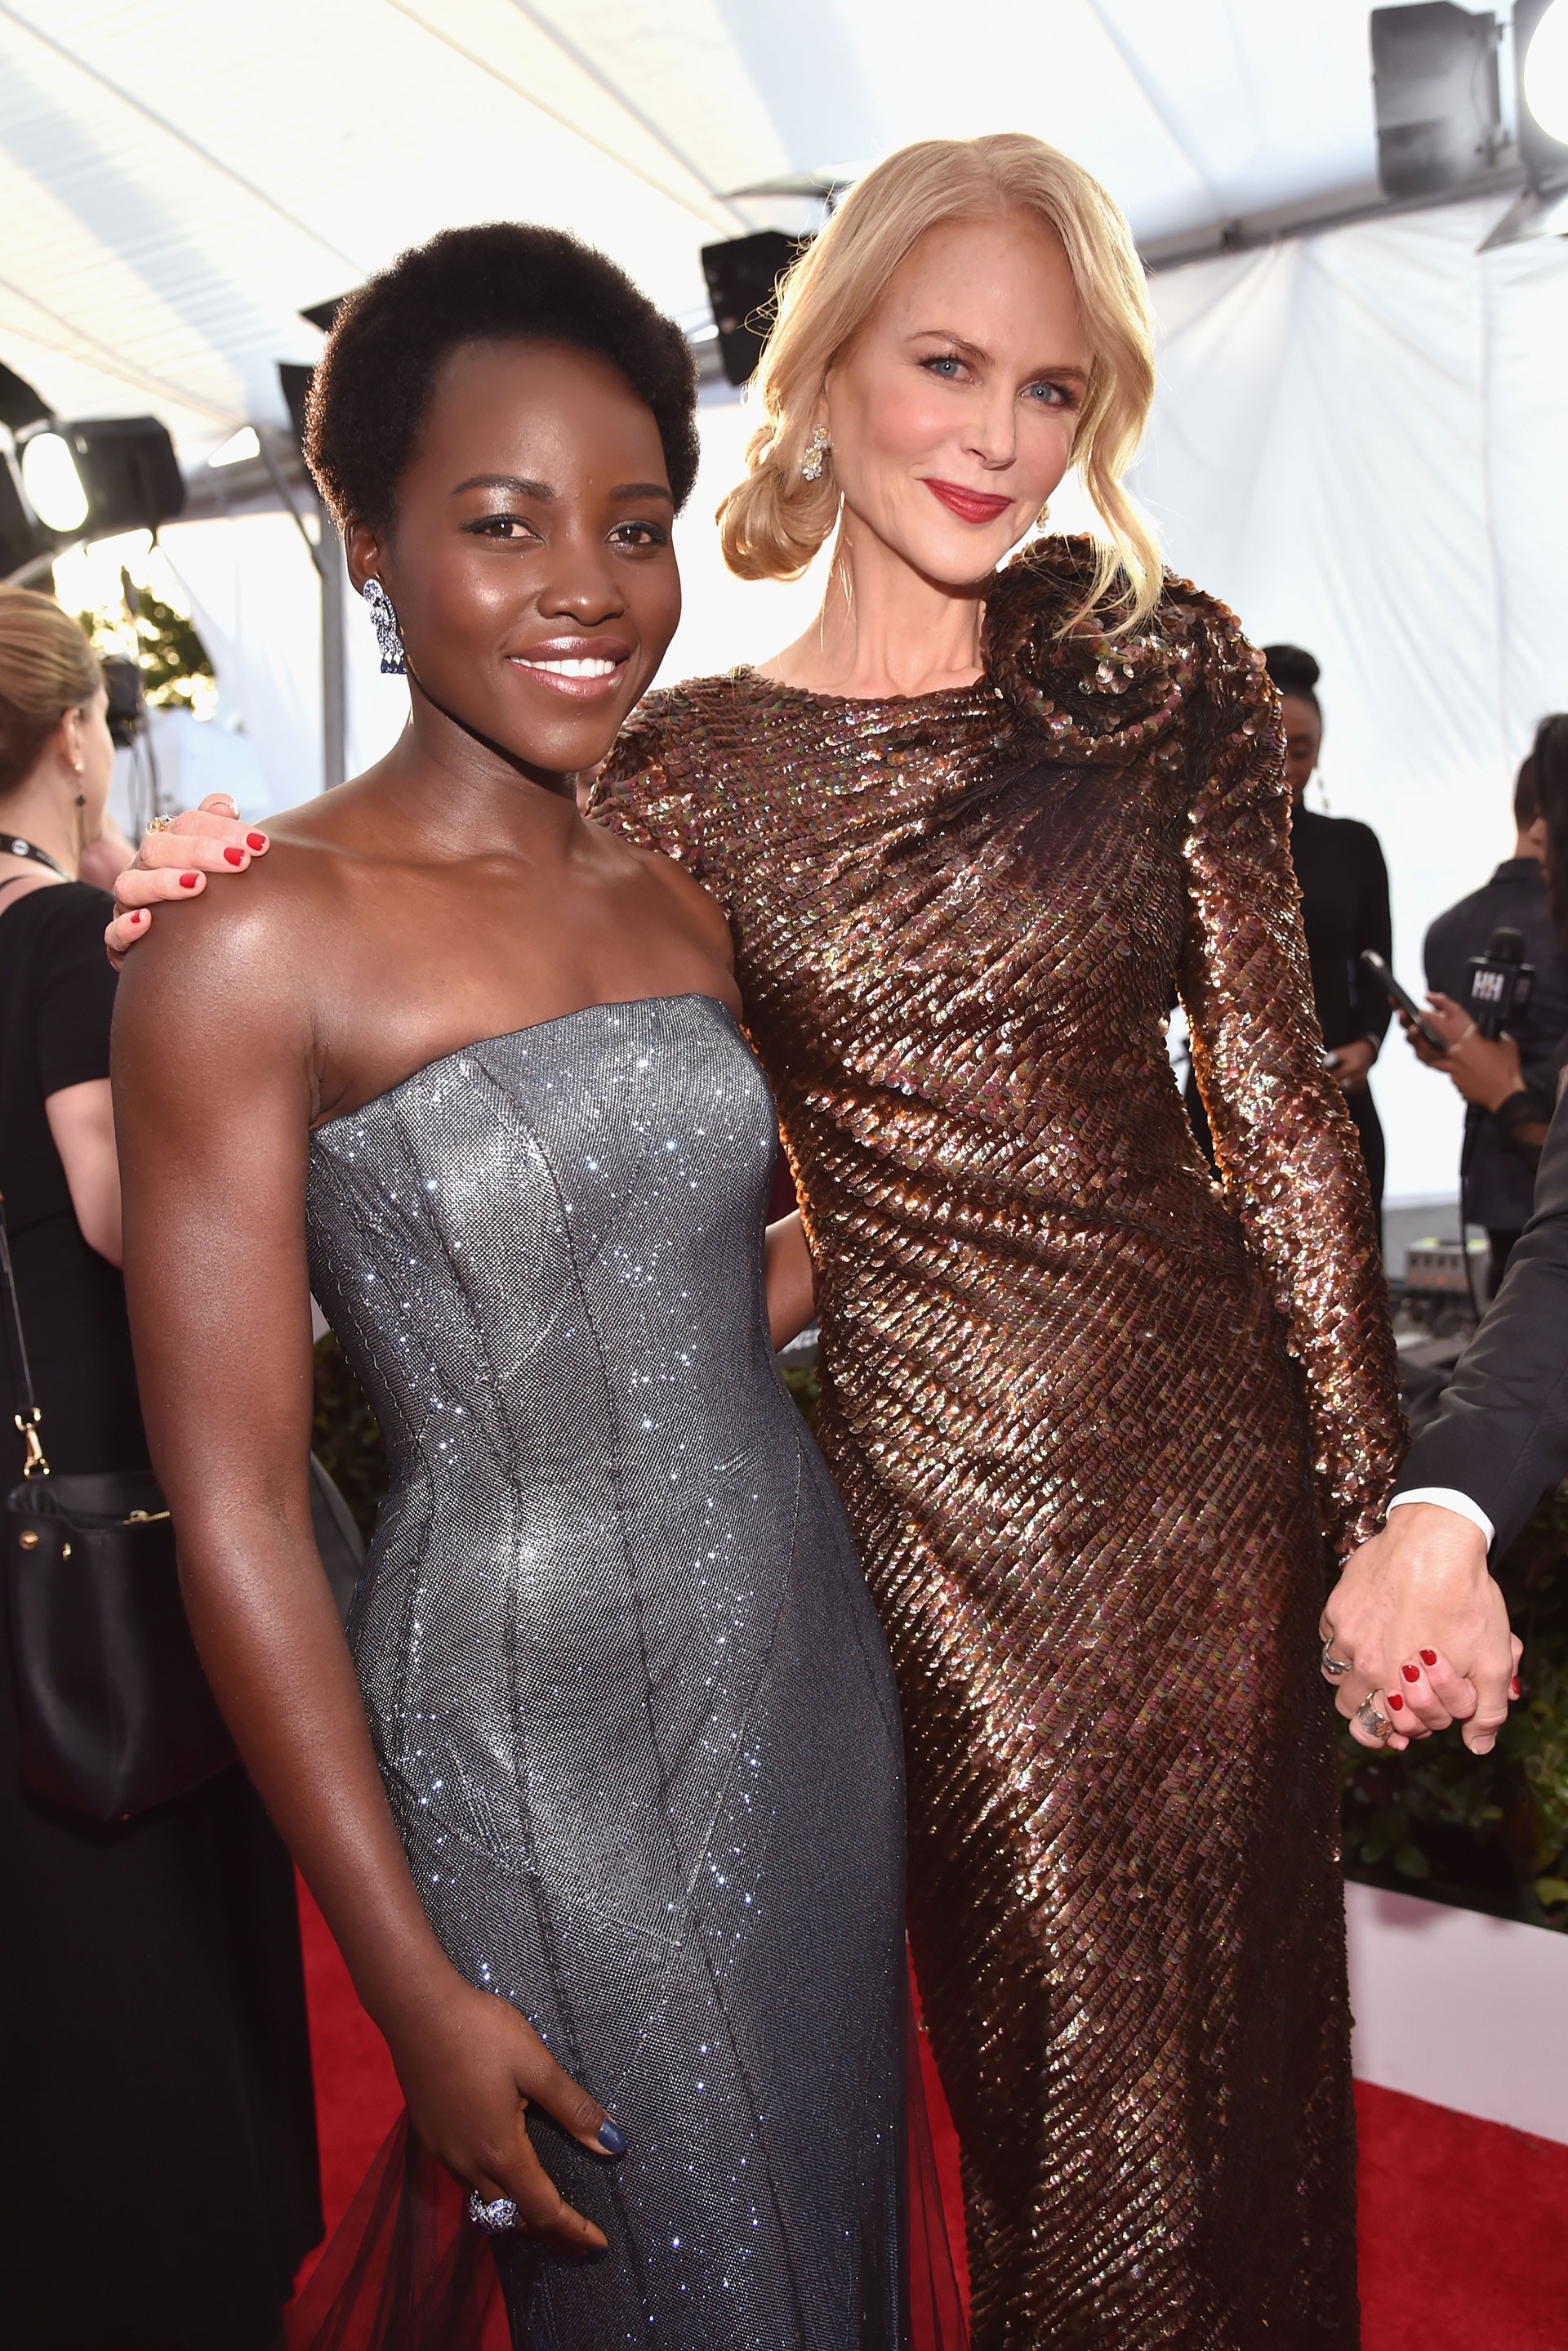 Un cálido encuentro entre Lupita Nyong y Nicole Kidman. Foto by Kevin MazurGetty Images for Turner Image.